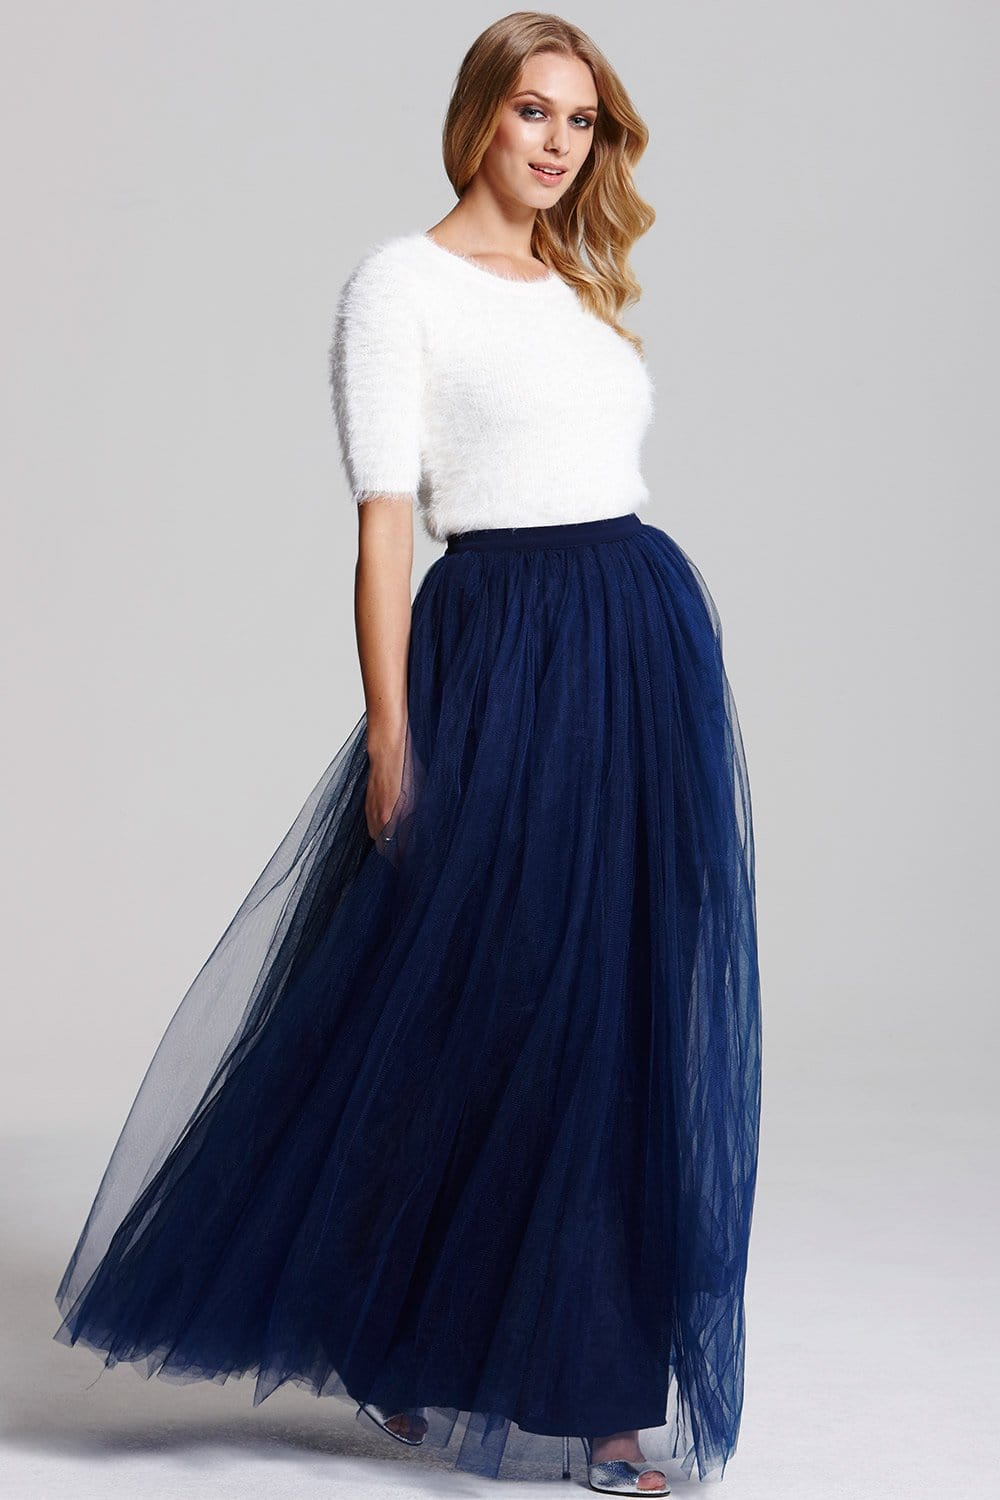 db230a16a7 Tulle Skirts Online Ireland – DACC